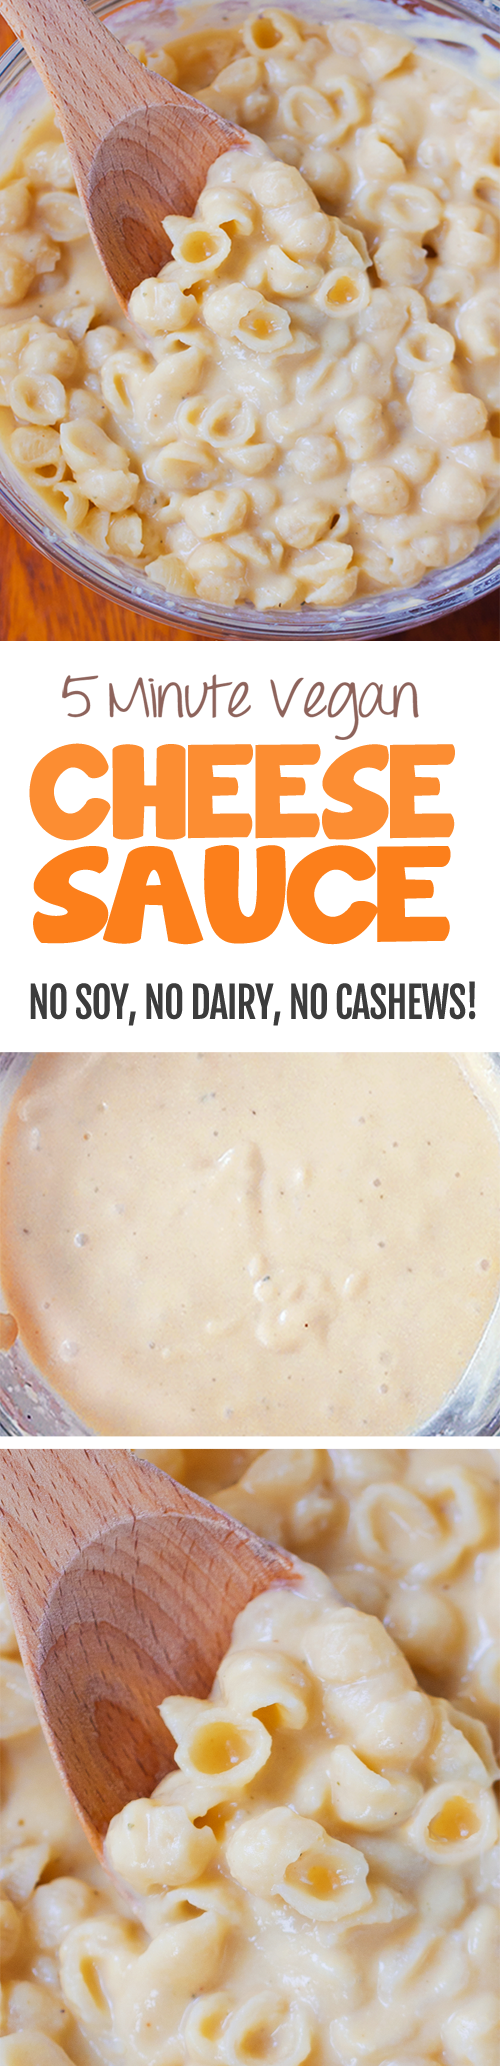 ULTRA creamy vegan cheese sauce - super low in fat and calories & done in 5 minutes... You'll want to put it on everything!!! https://chocolatecoveredkatie.com @choccoveredkt